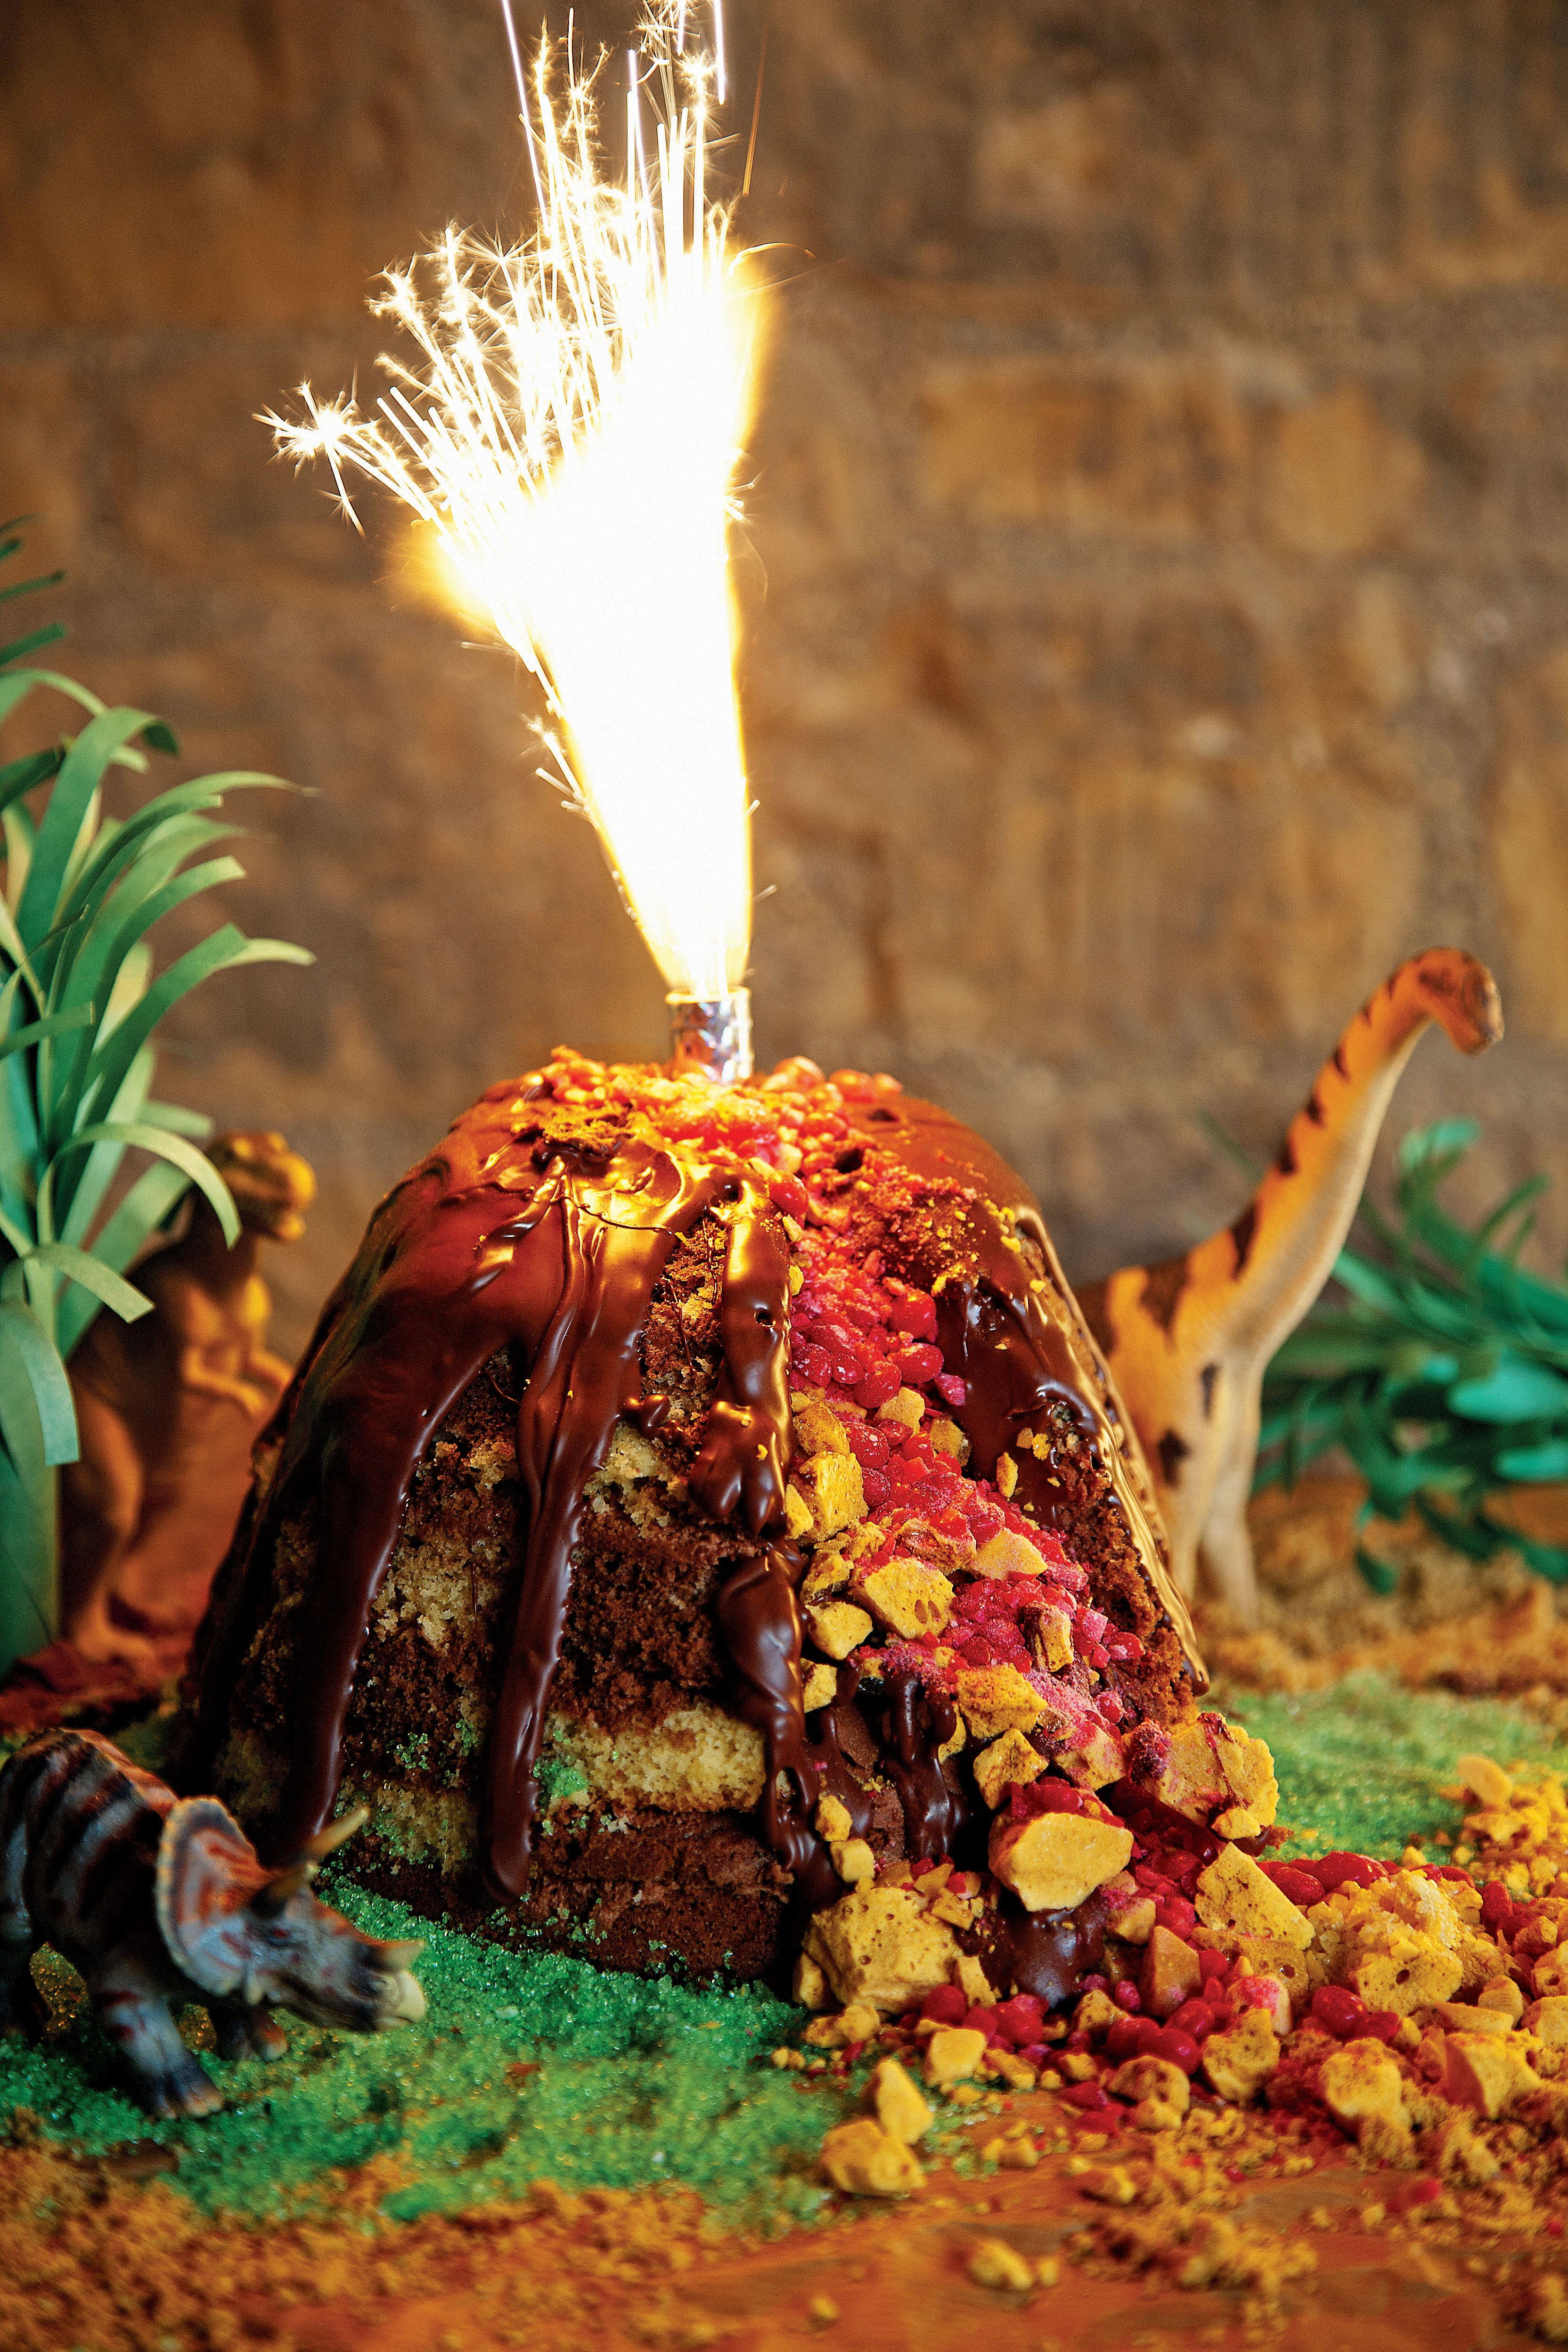 The Amazing Erupting Volcano Marble Cake In Issue 10